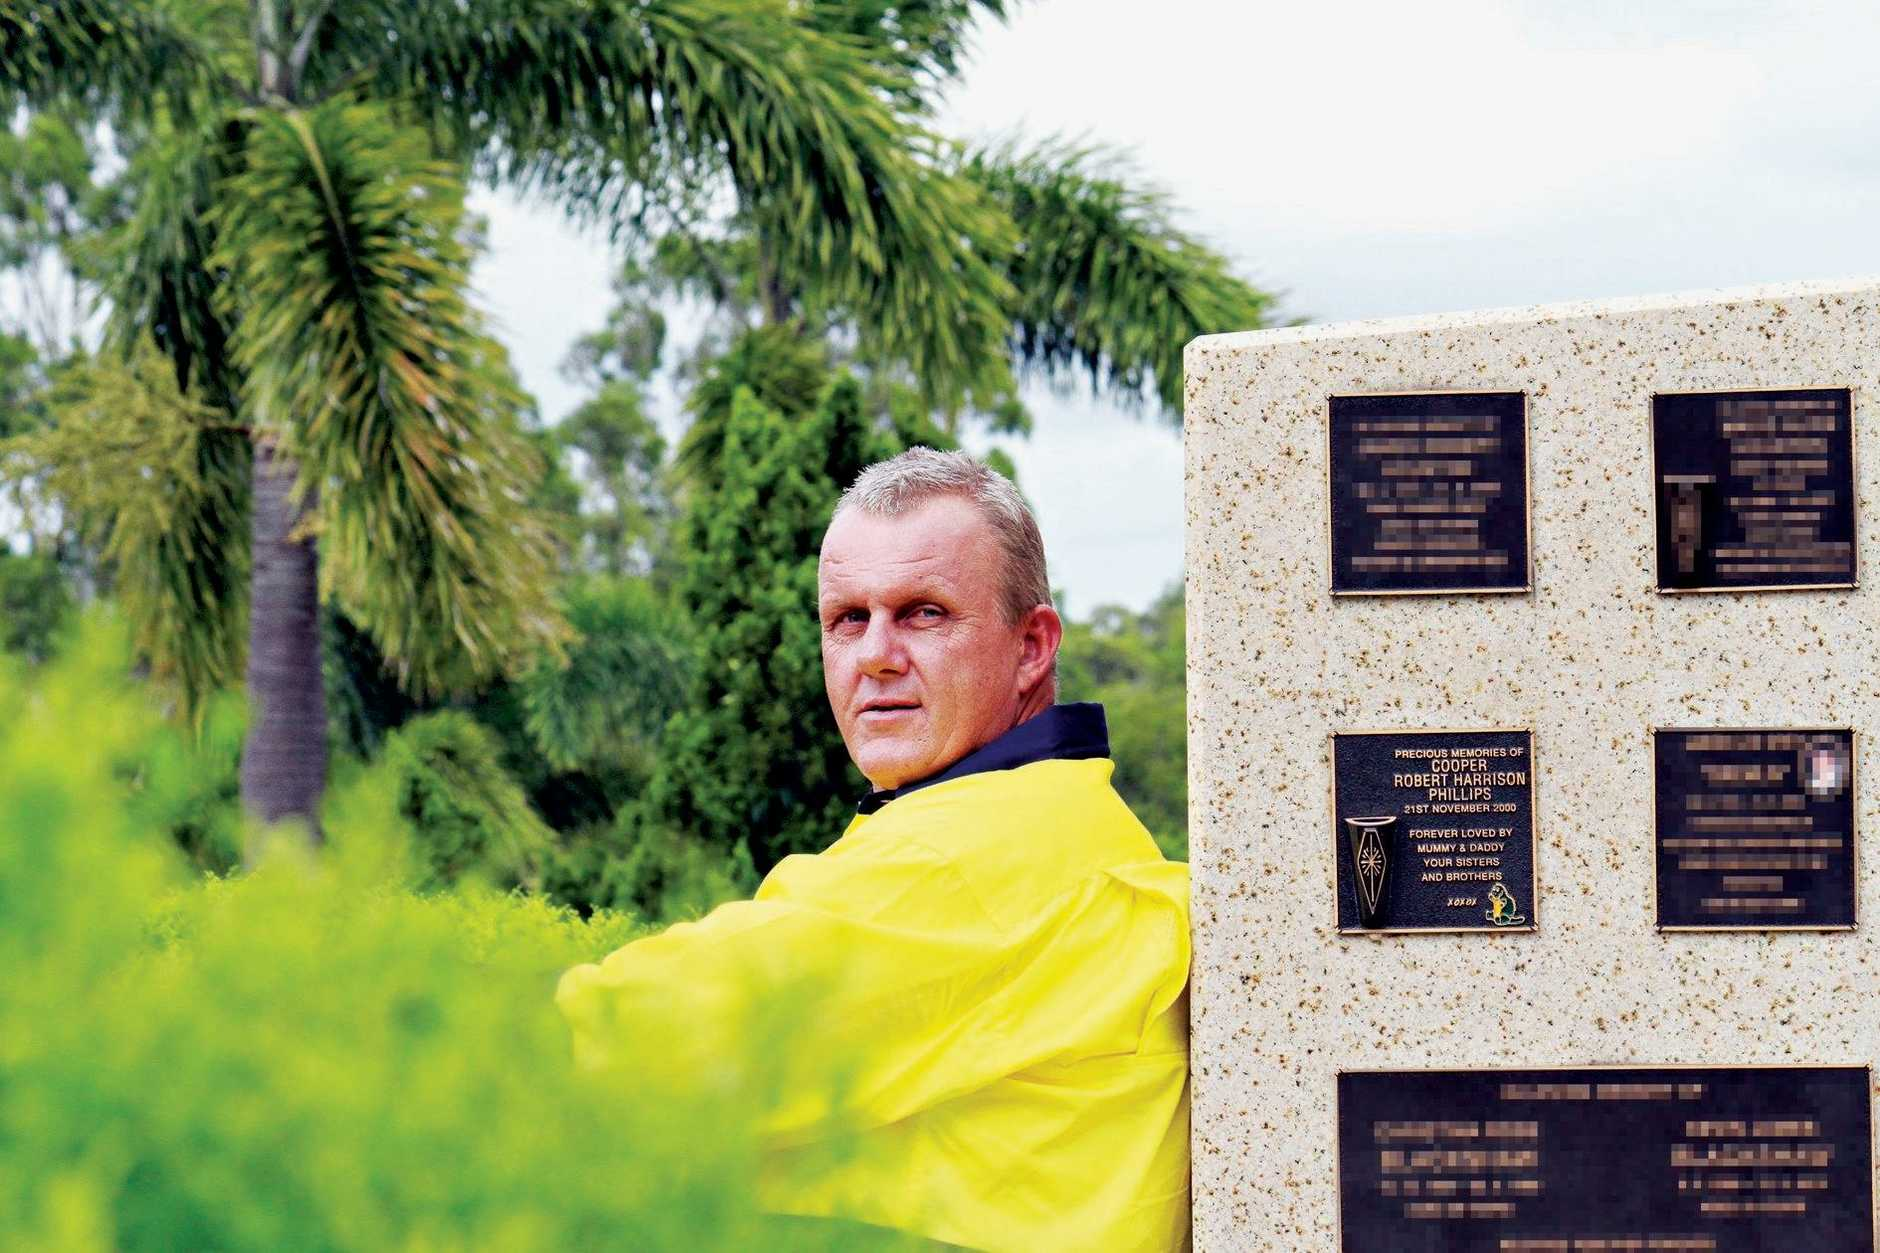 Robert Phillips sits next to the memorial for his son who died at birth. Mr Phillips works at the Albany Creek Memorial Park over-seeing cremations and burials.